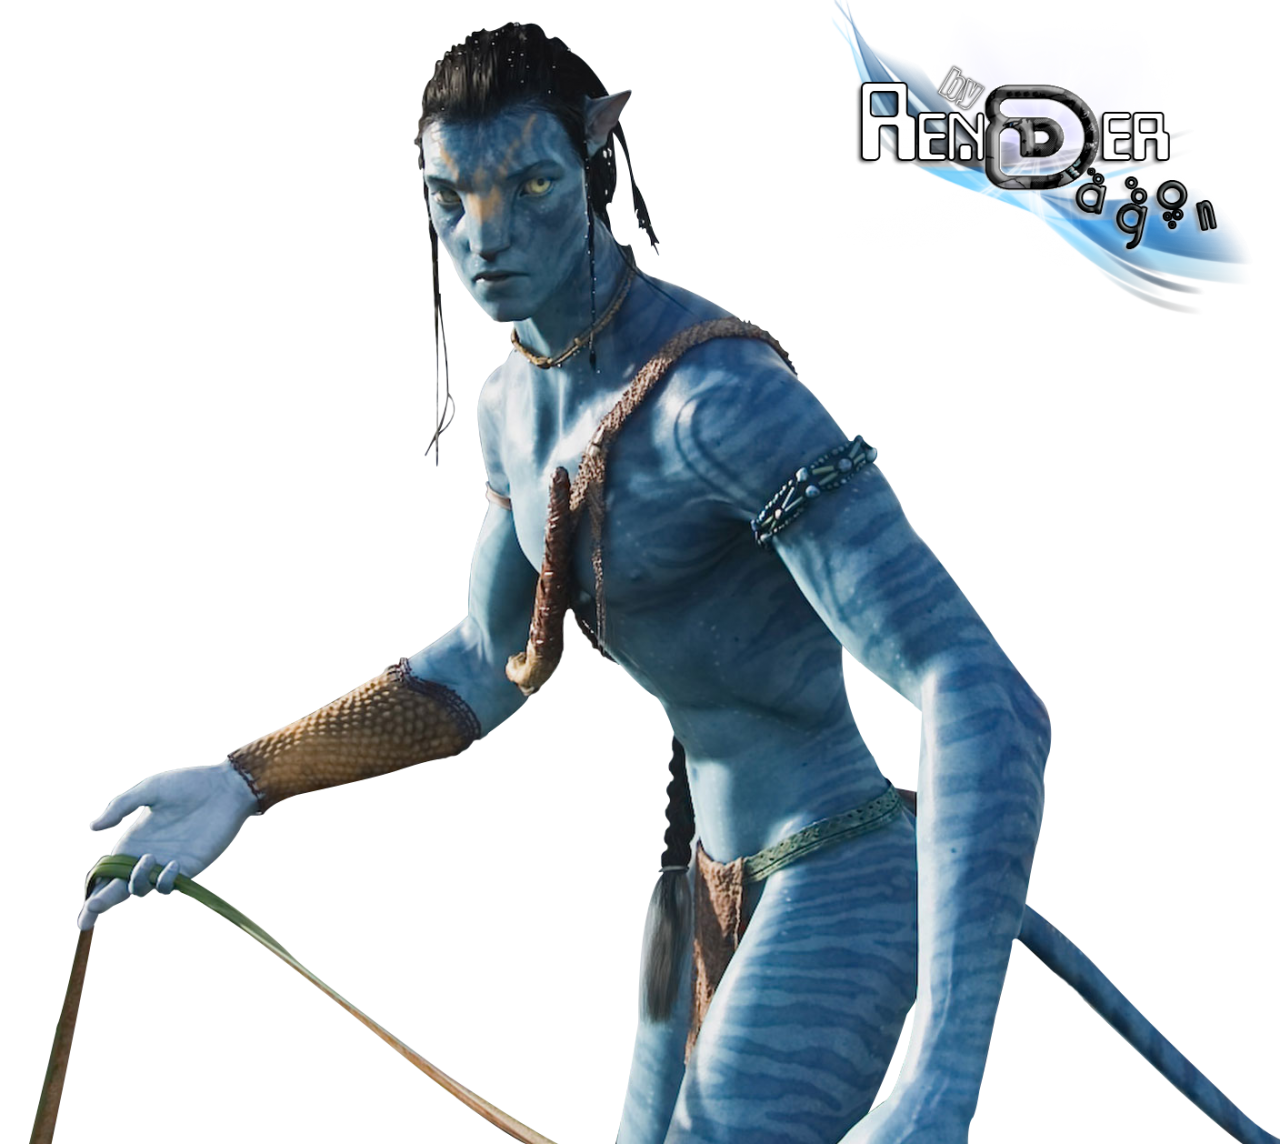 Avatar Jake sully PNG Image